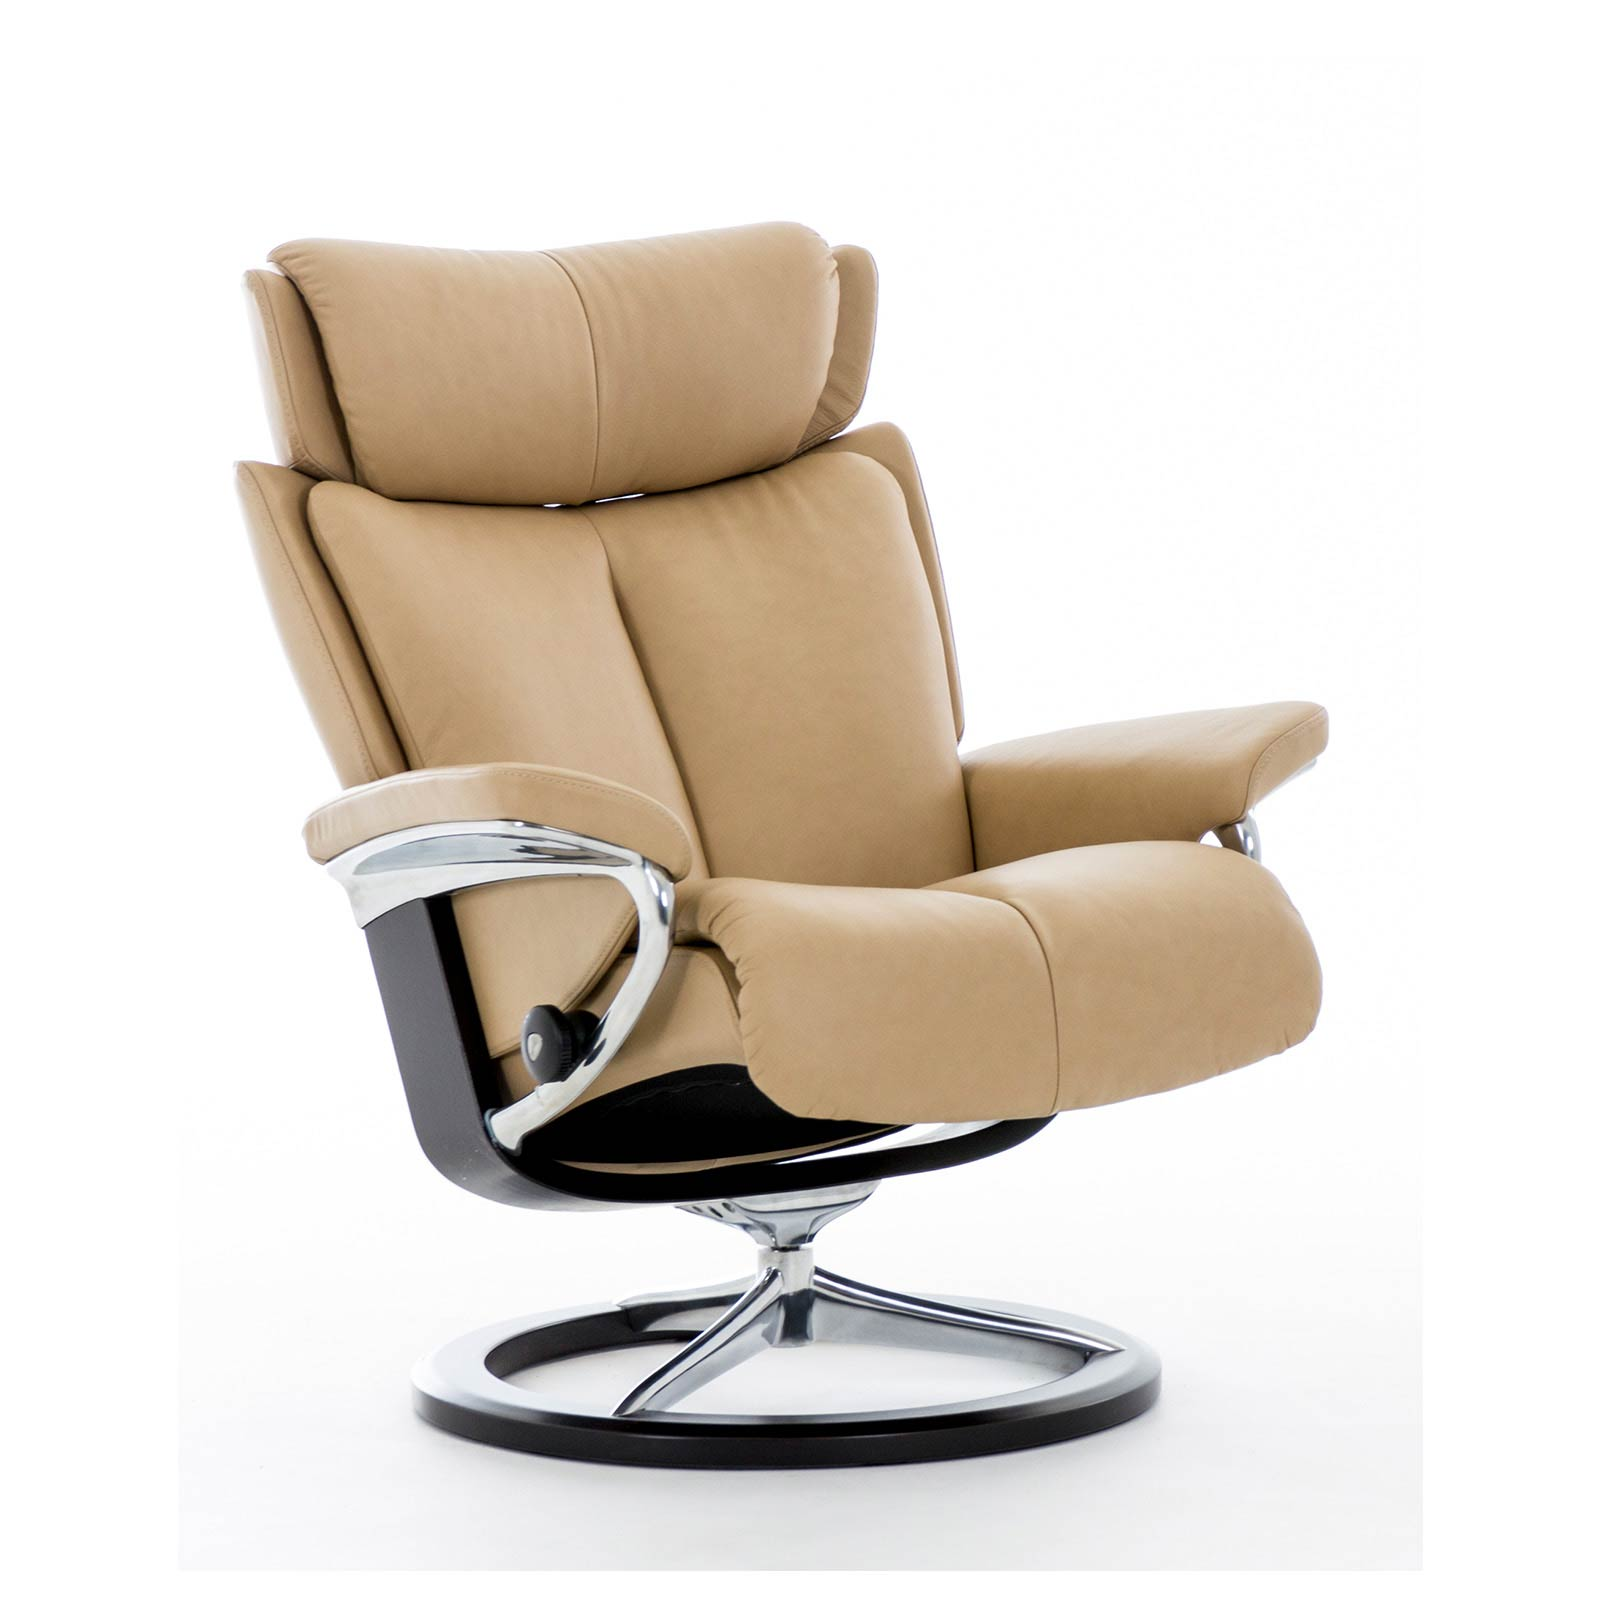 Stressless Magic Signature Sessel Stressless Sessel Magic M Leder Paloma Sand Gestell Signature Ohne Hocker